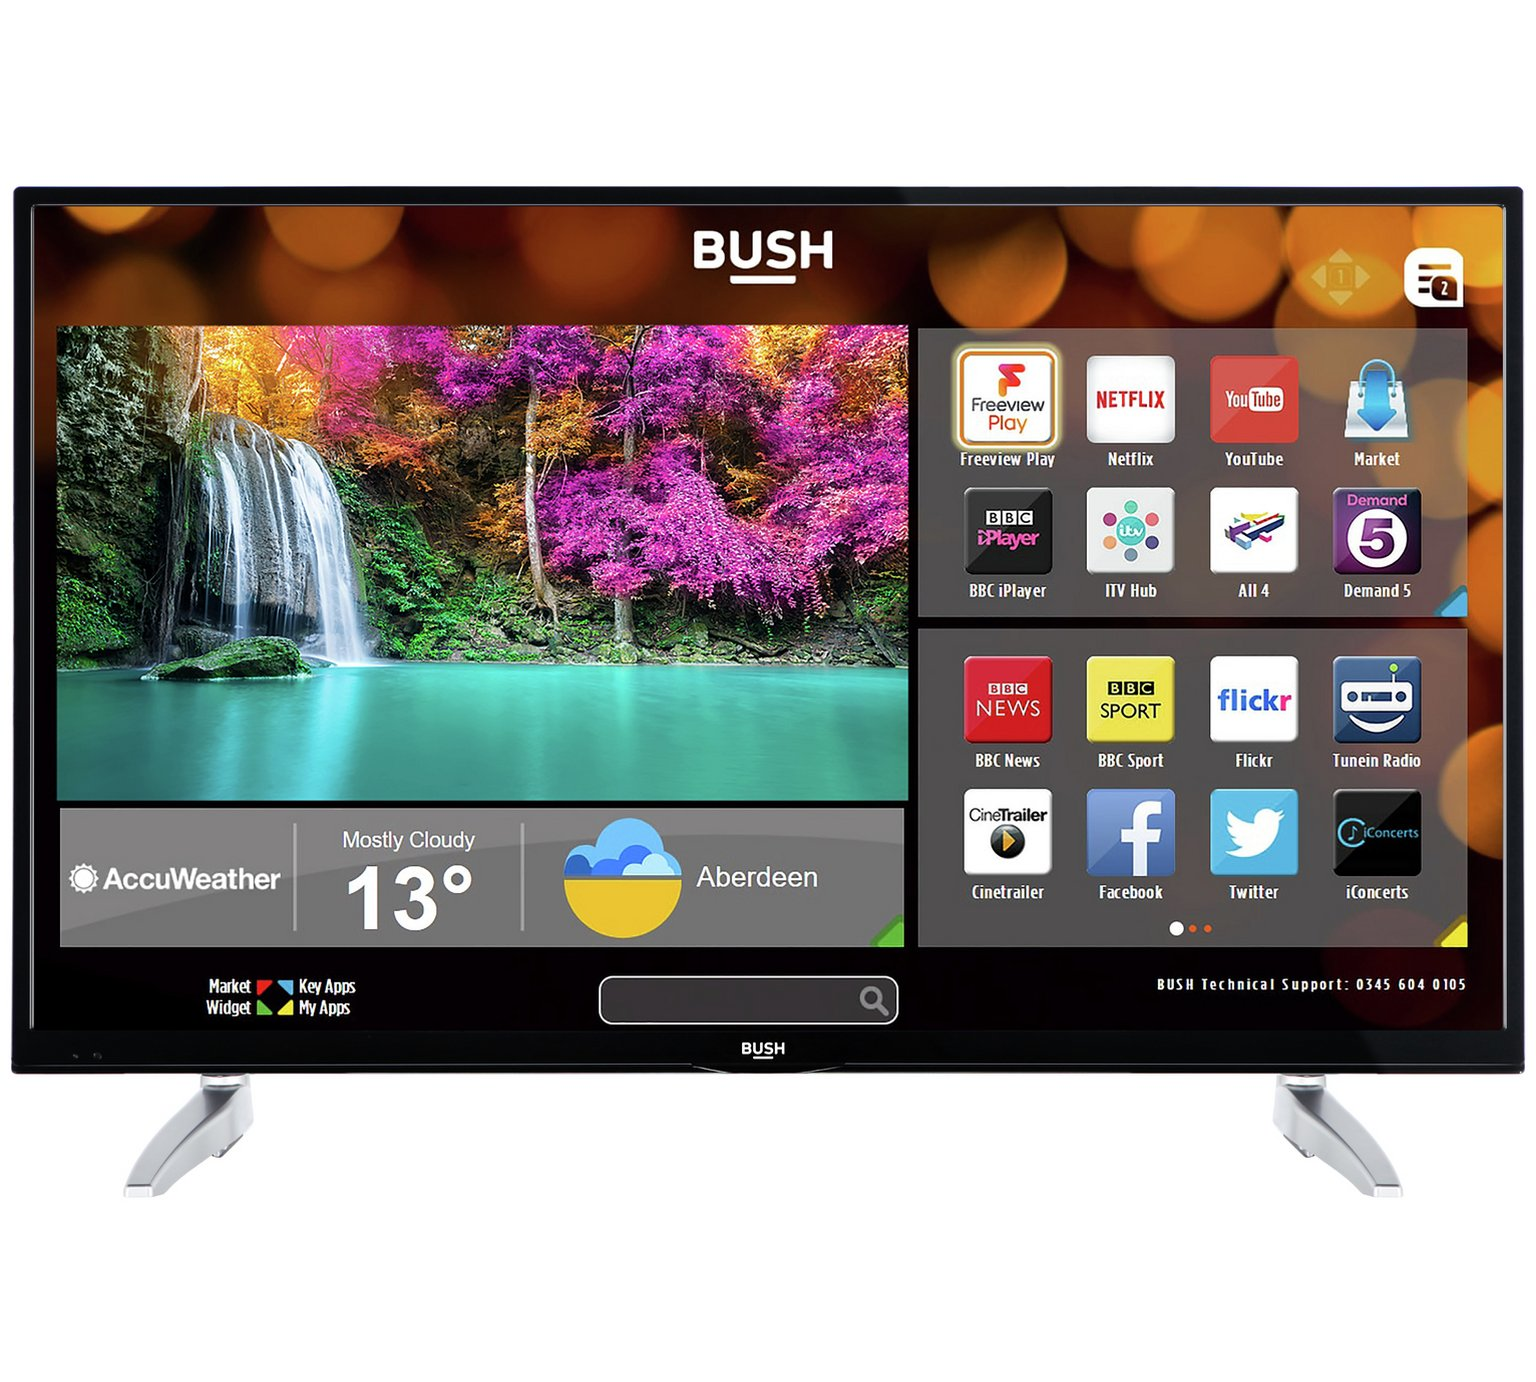 Bush 43 Inch Smart 4K UHD TV with HDR